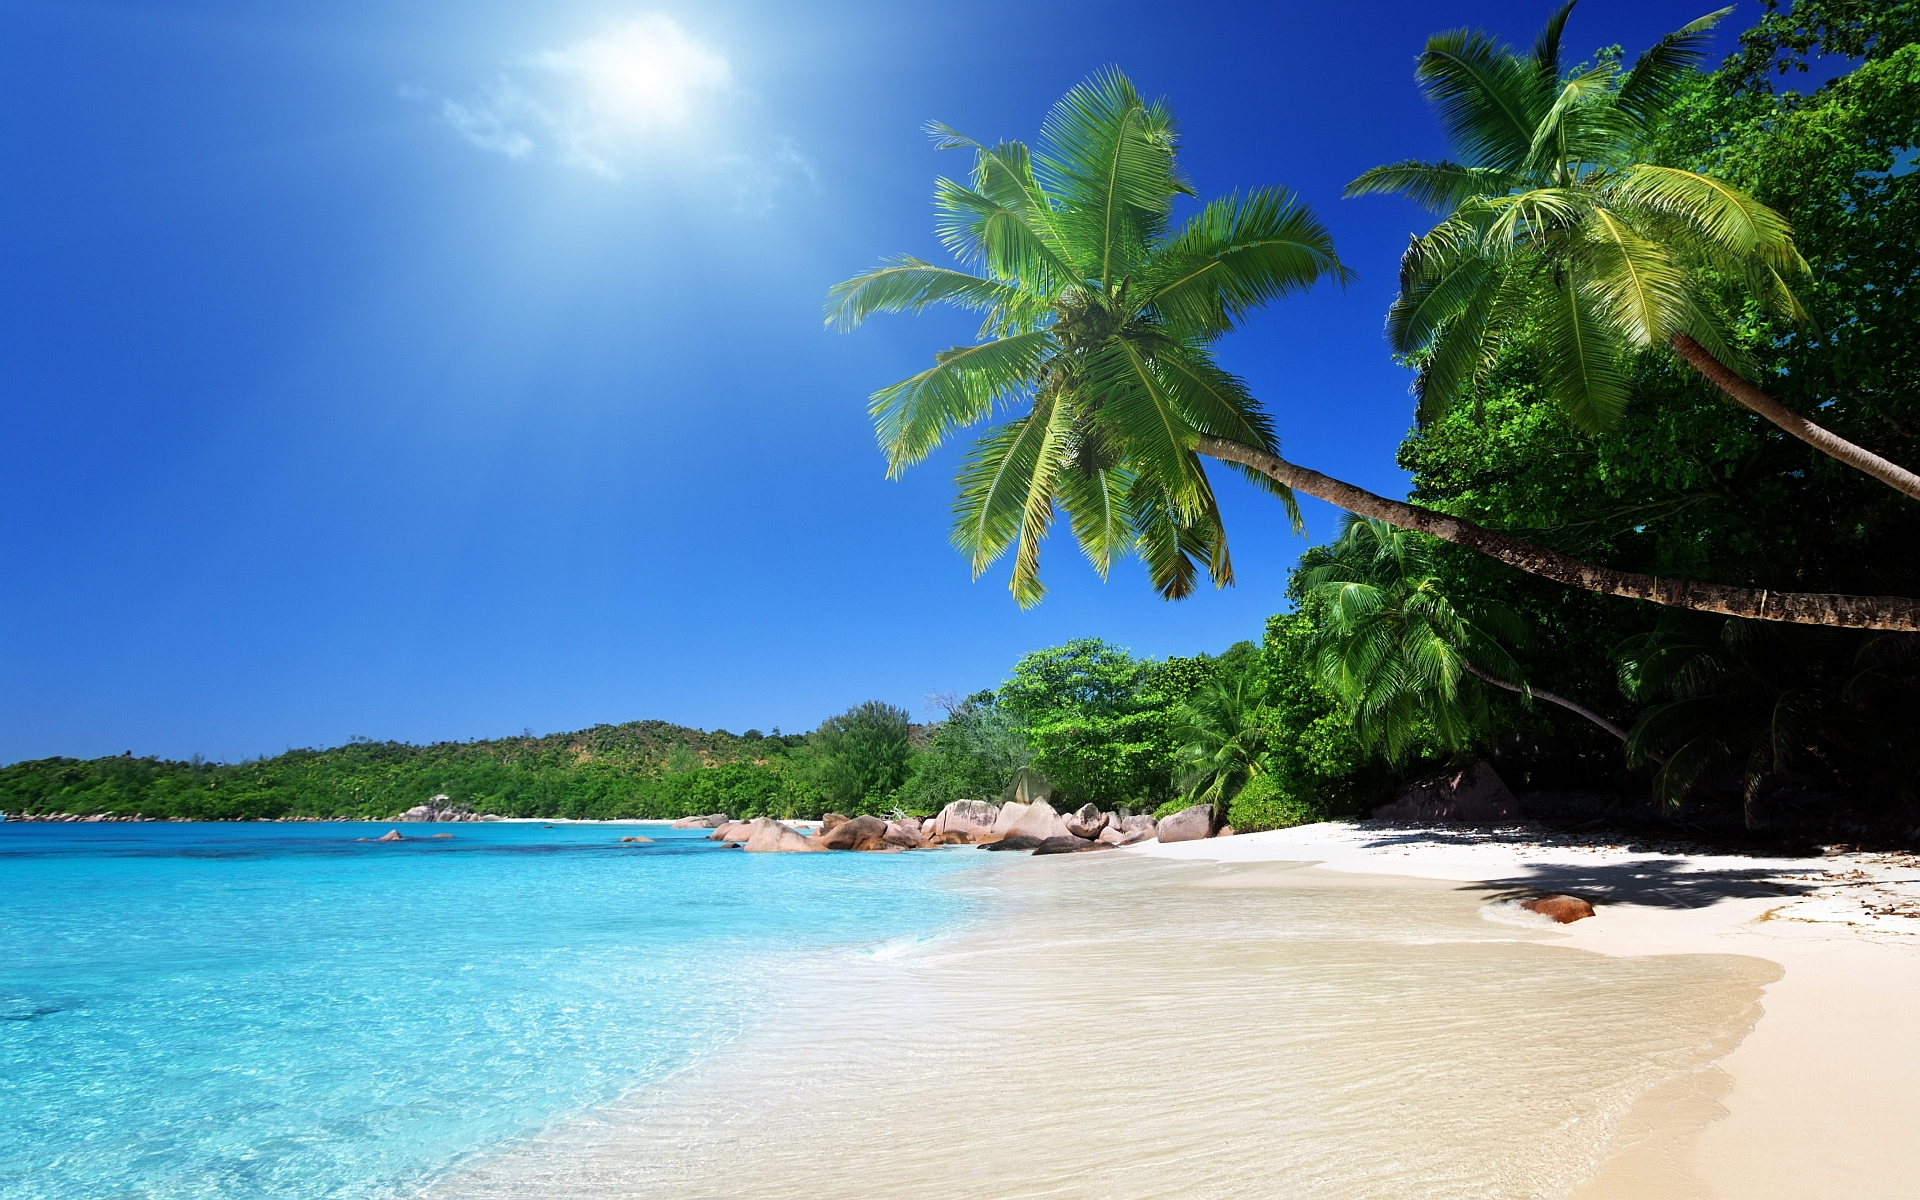 Beautiful Beach Pictures - HD Wallpapers Backgrounds of Your Choice